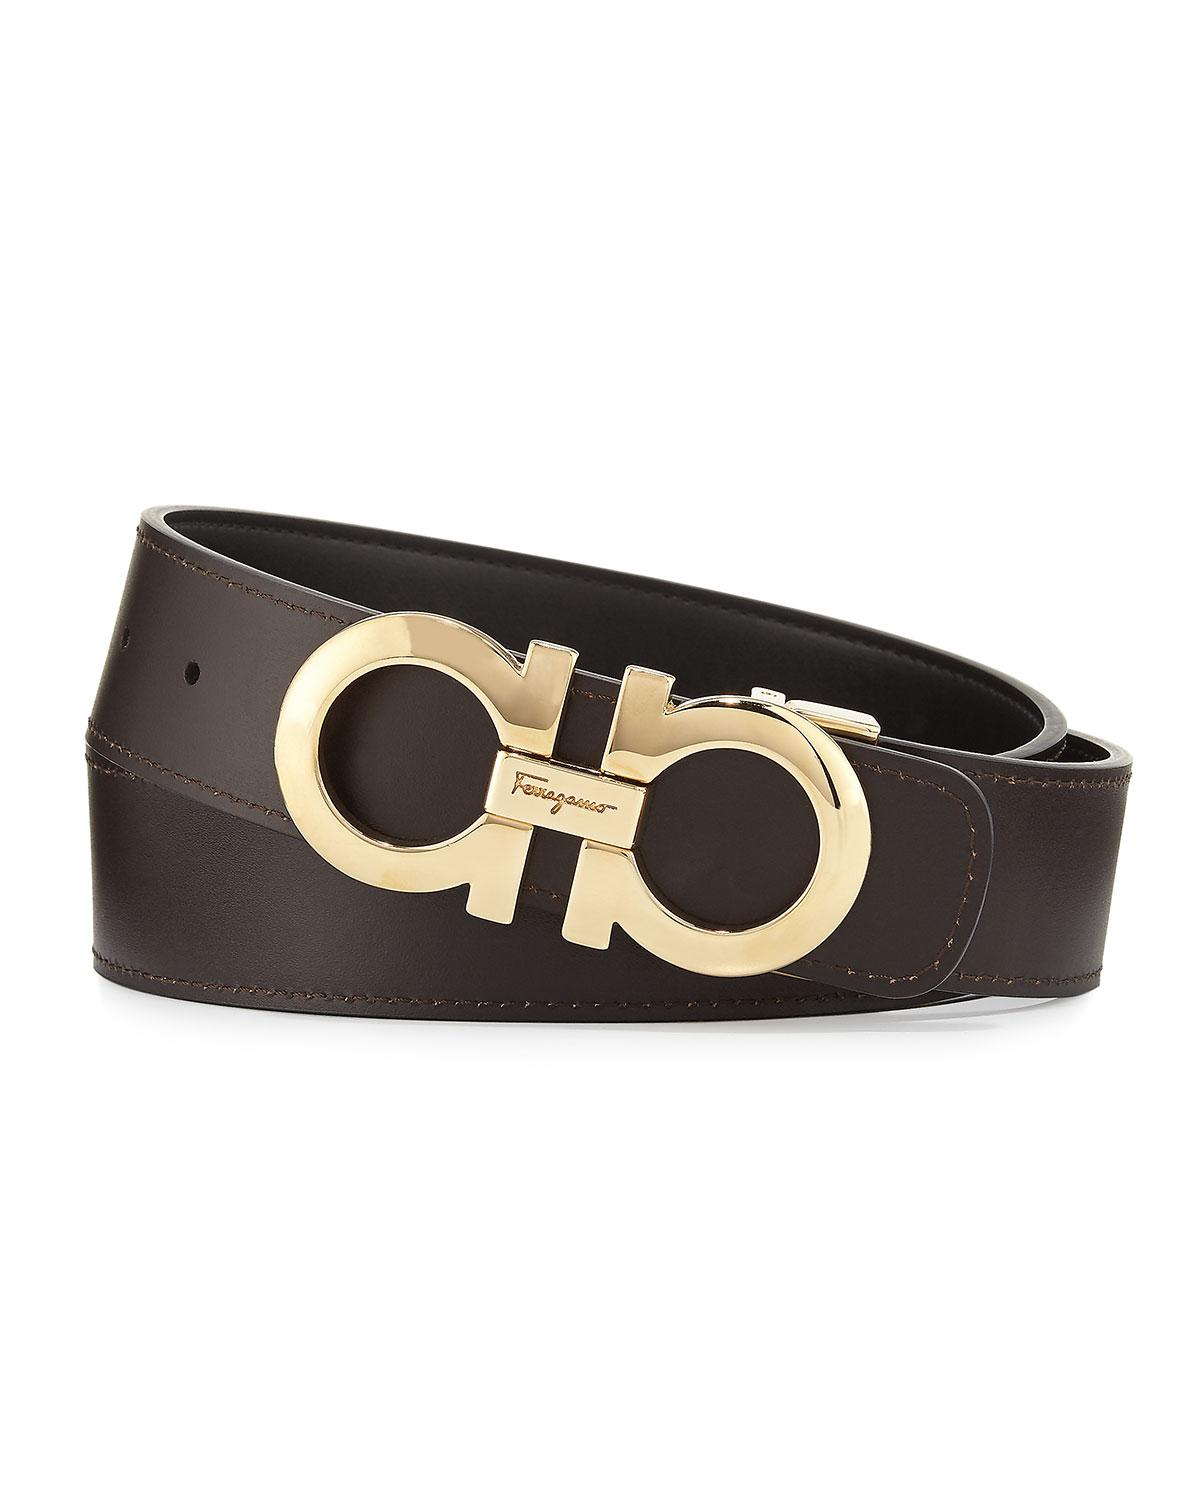 8db46639575d6 Lyst - Ferragamo Men s Double-gancini Reversible Leather Belt Black ...